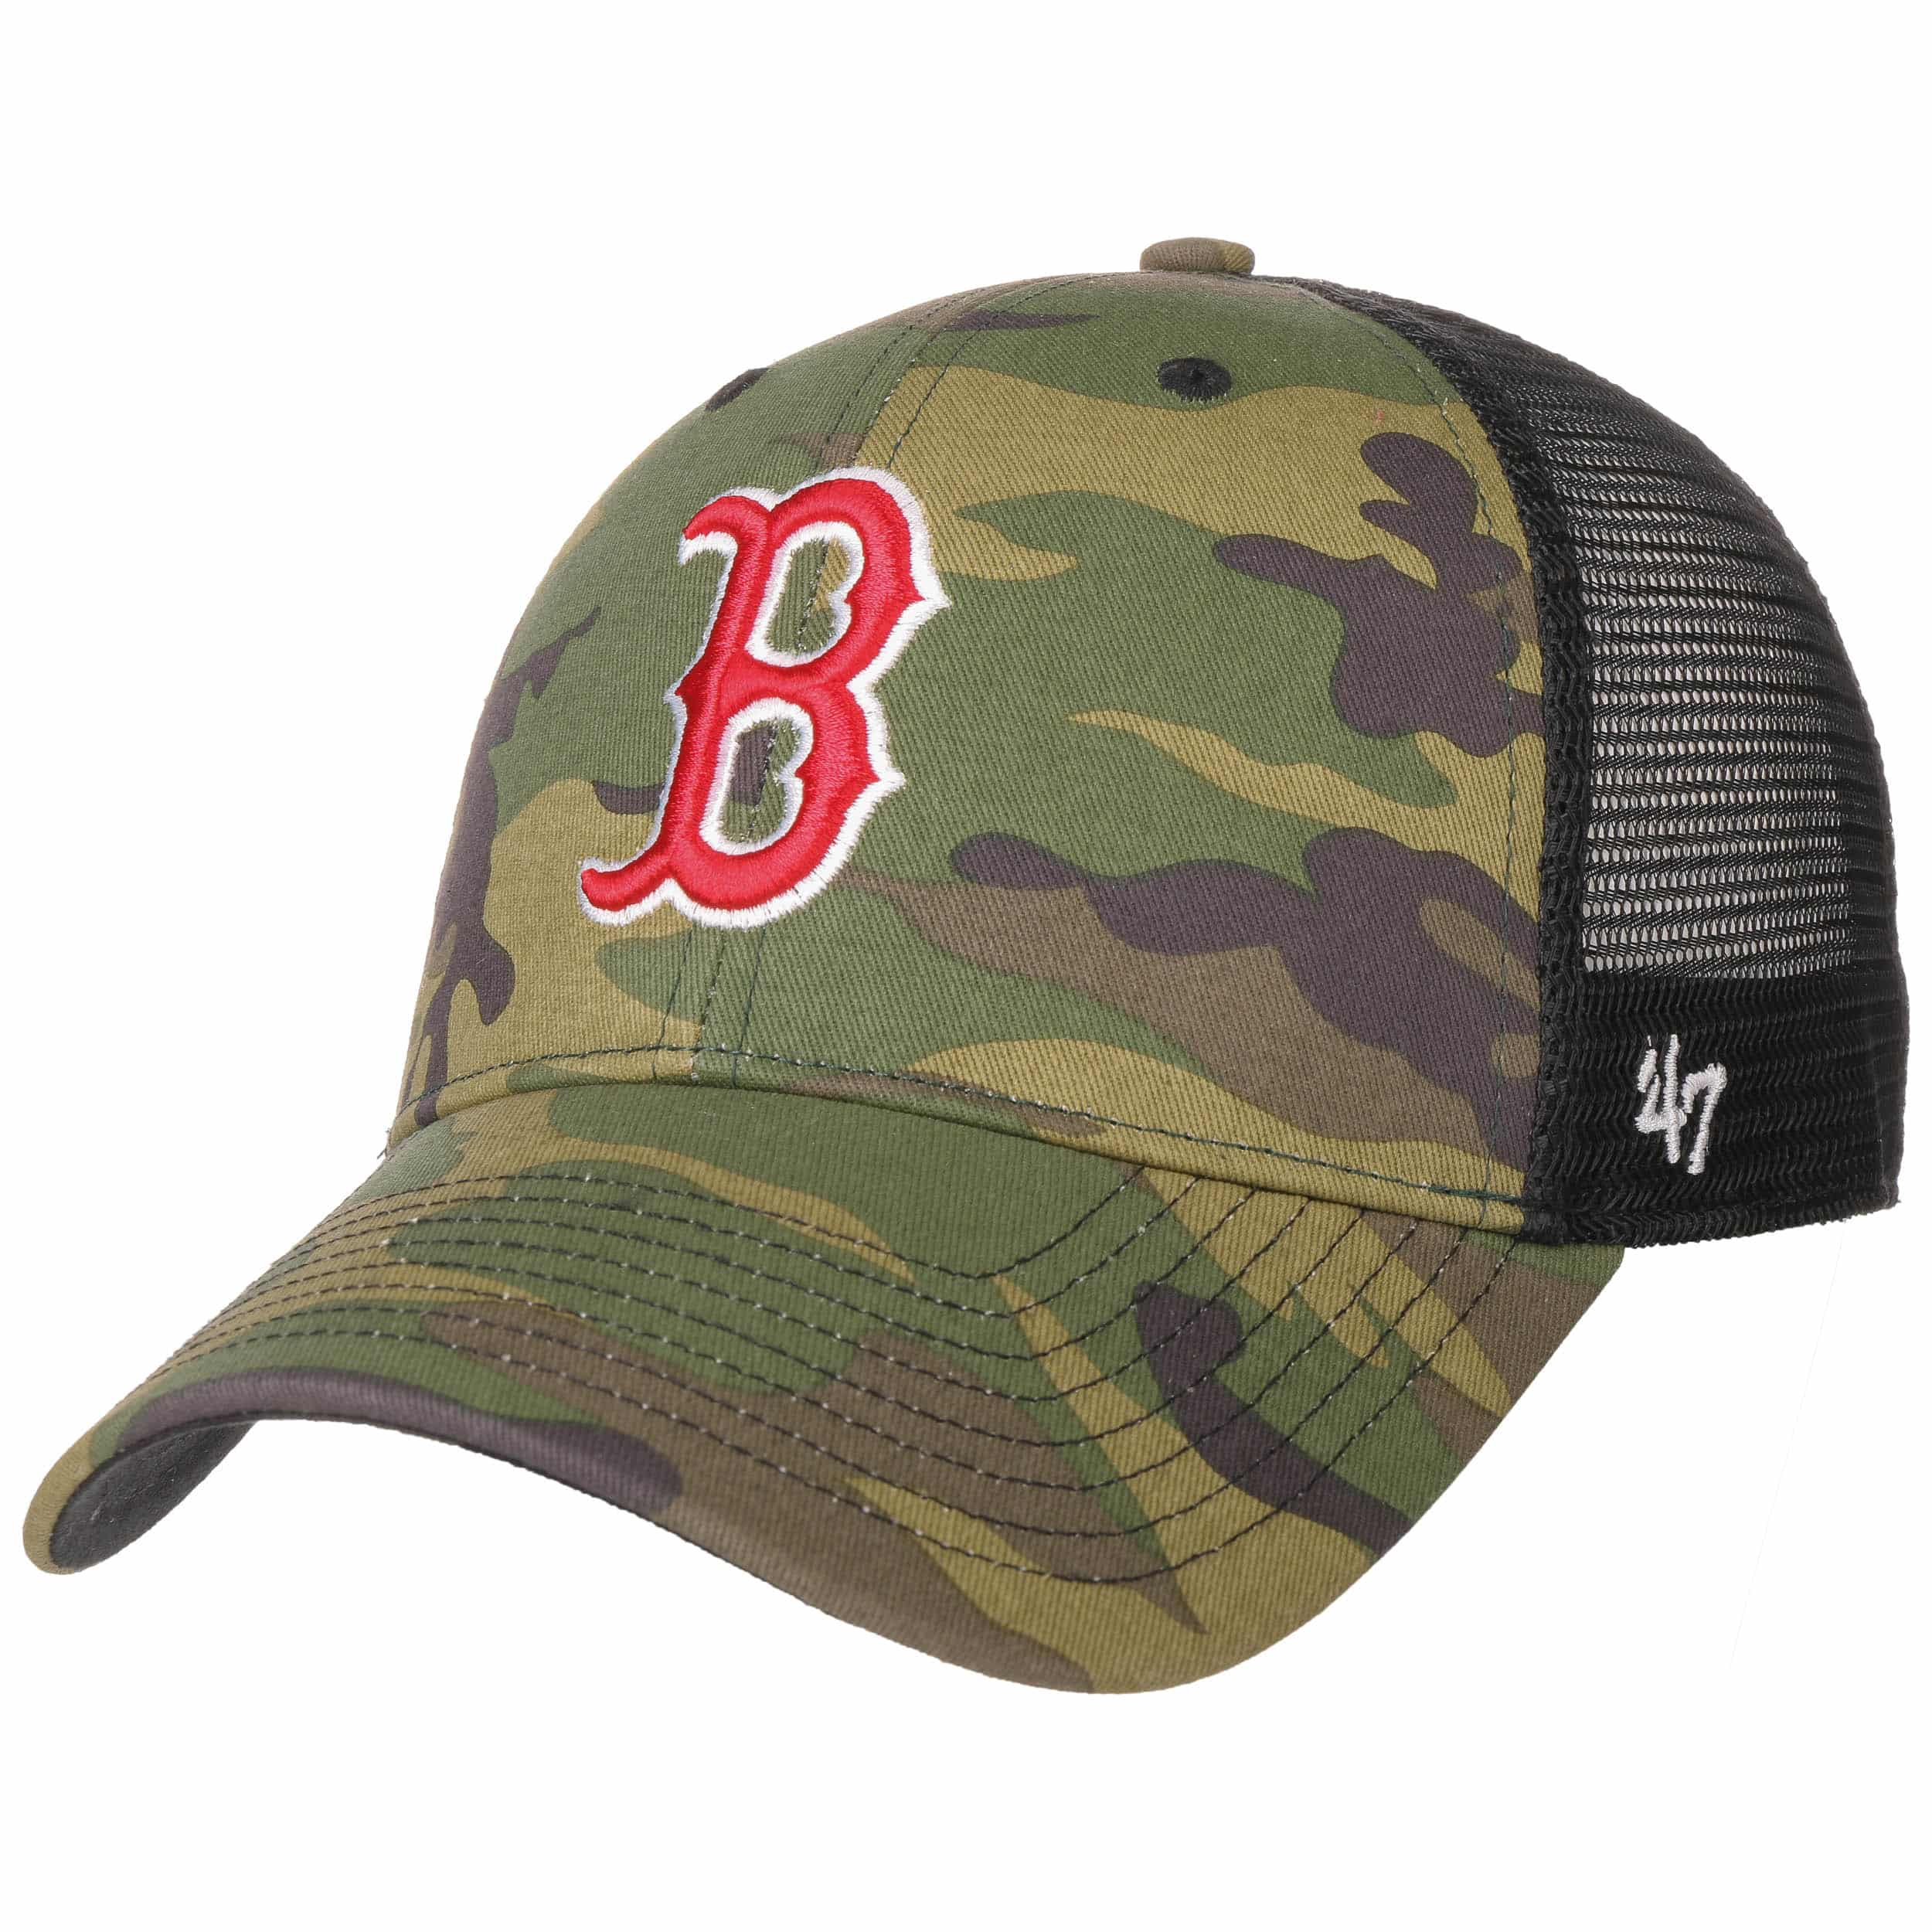 MVP Camo Red Sox Trucker Cap by 47 Brand 96913751744